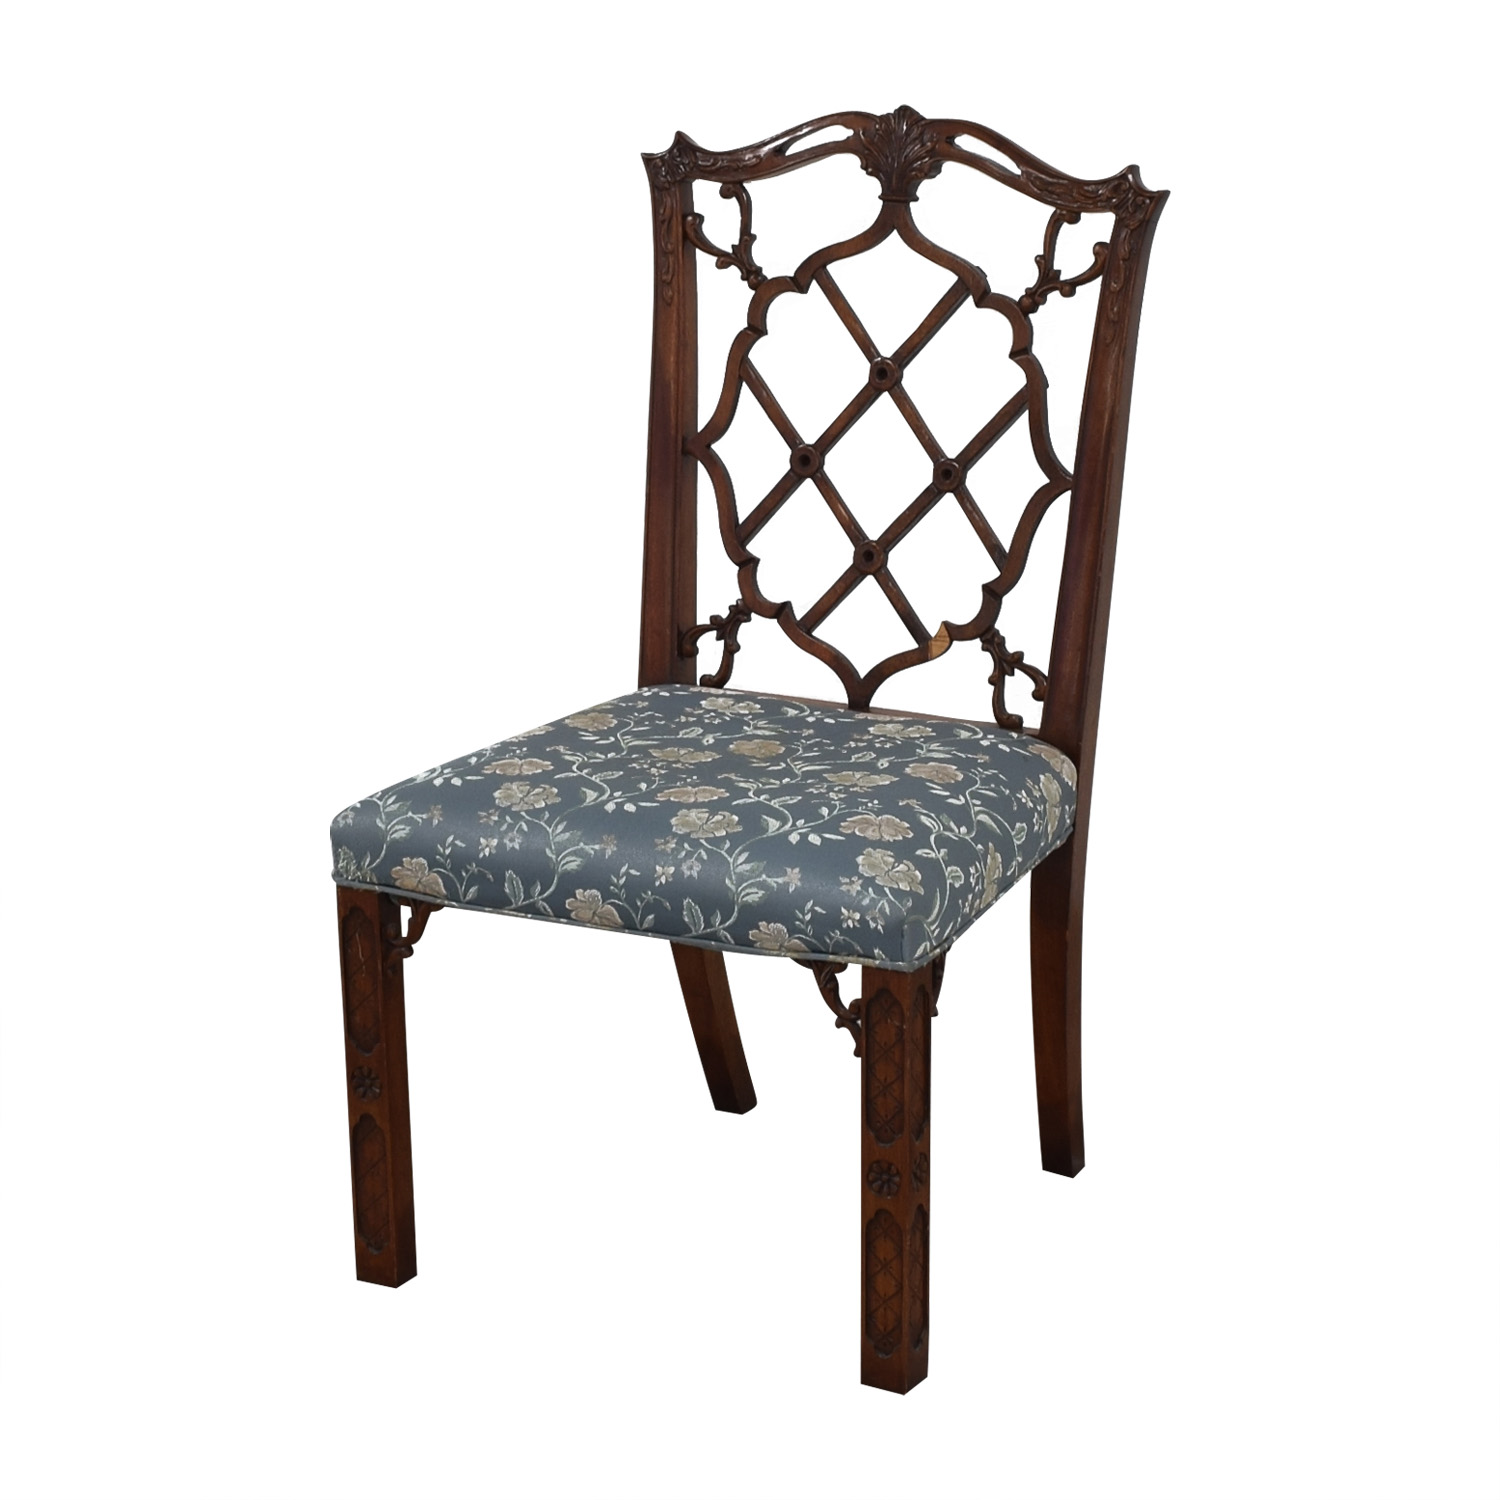 Chelsea House Chelsea House Custom Upholstered Chairs second hand